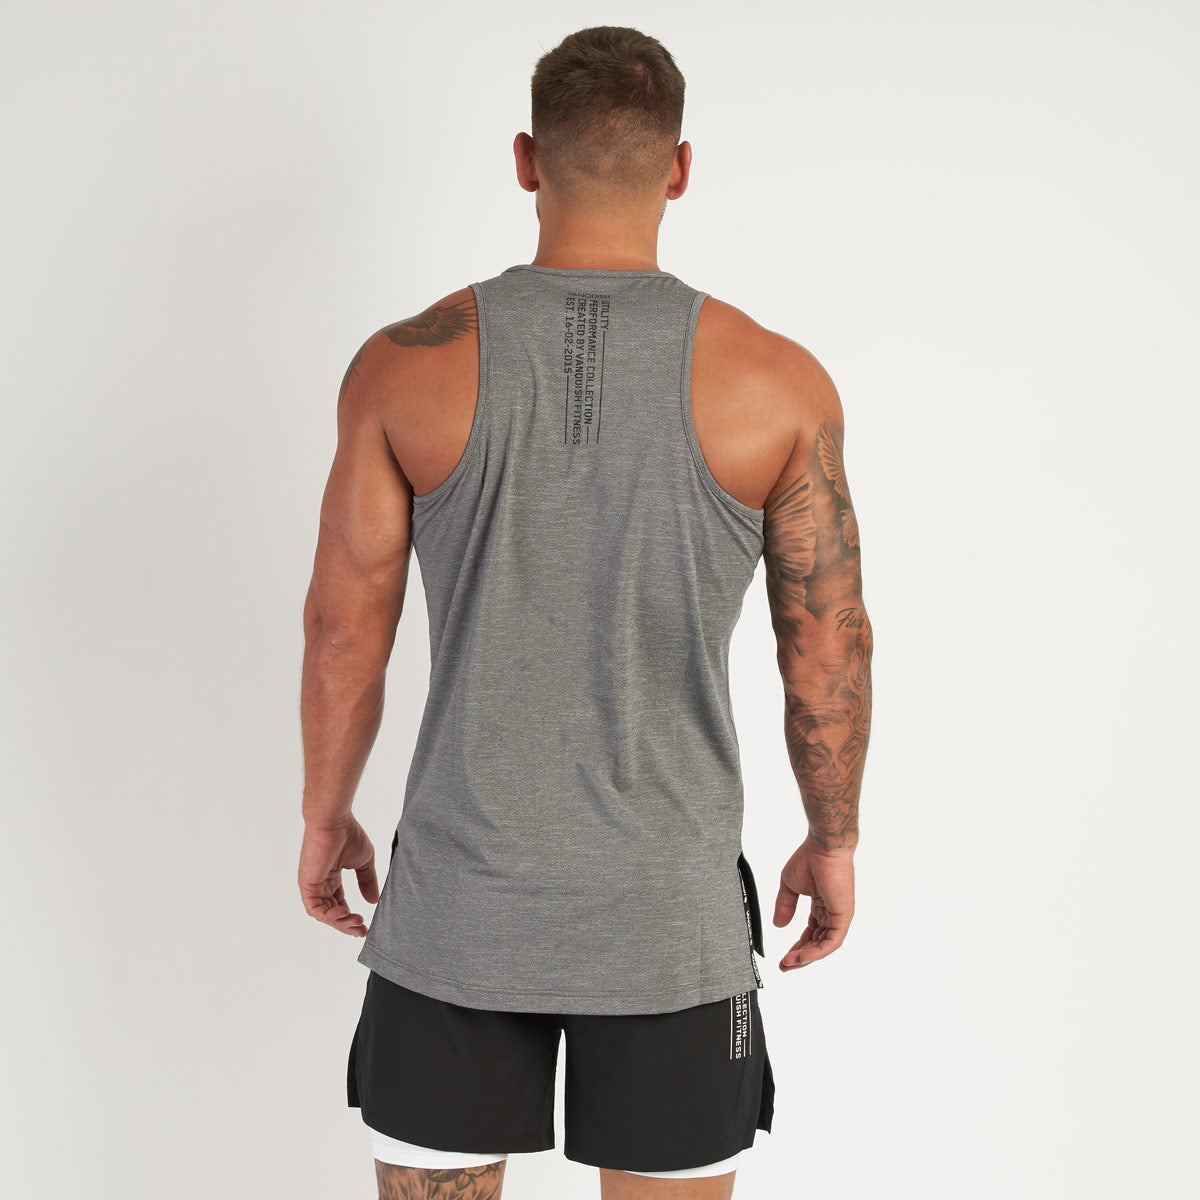 Vanquish Utility Men's Grey Tank Top